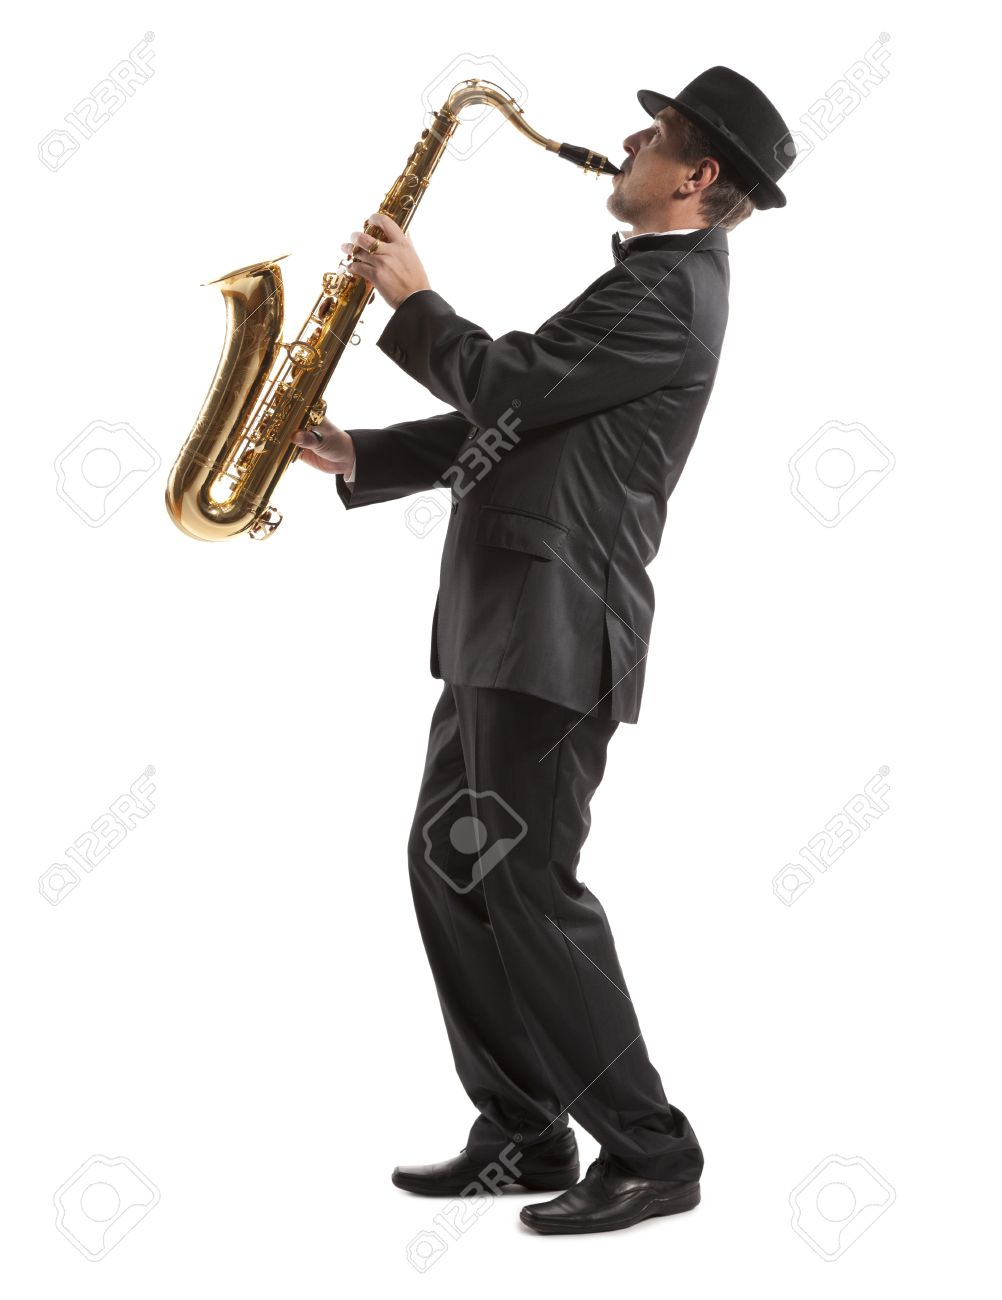 Saxophonist. Middle aged man playing on saxophone isolated on background Stock Photo - 19225134